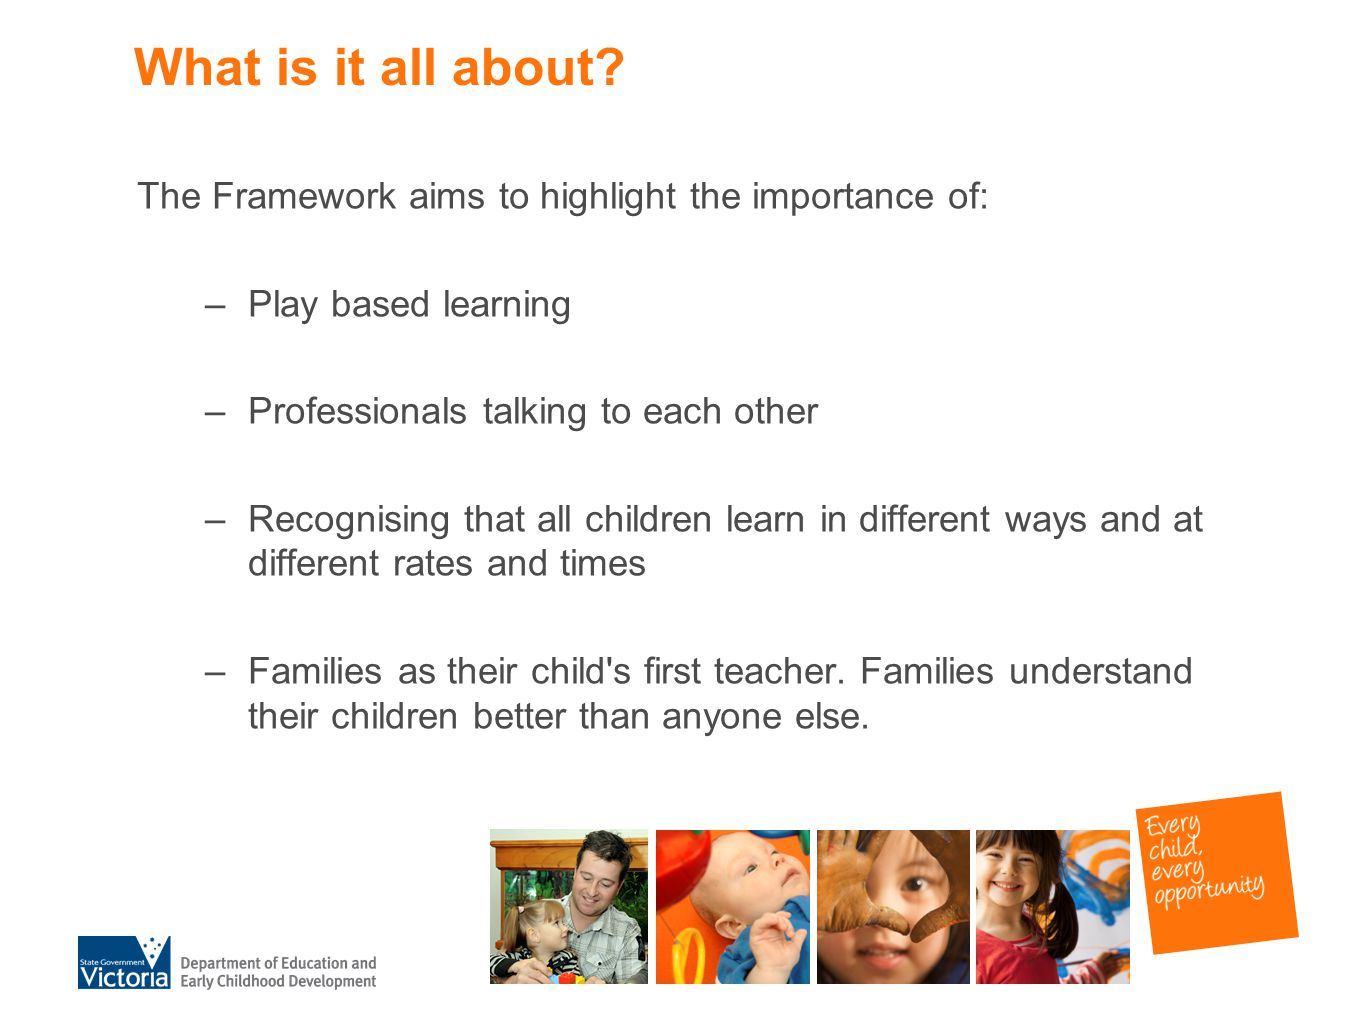 What is it all about The Framework aims to highlight the importance of: Play based learning. Professionals talking to each other.